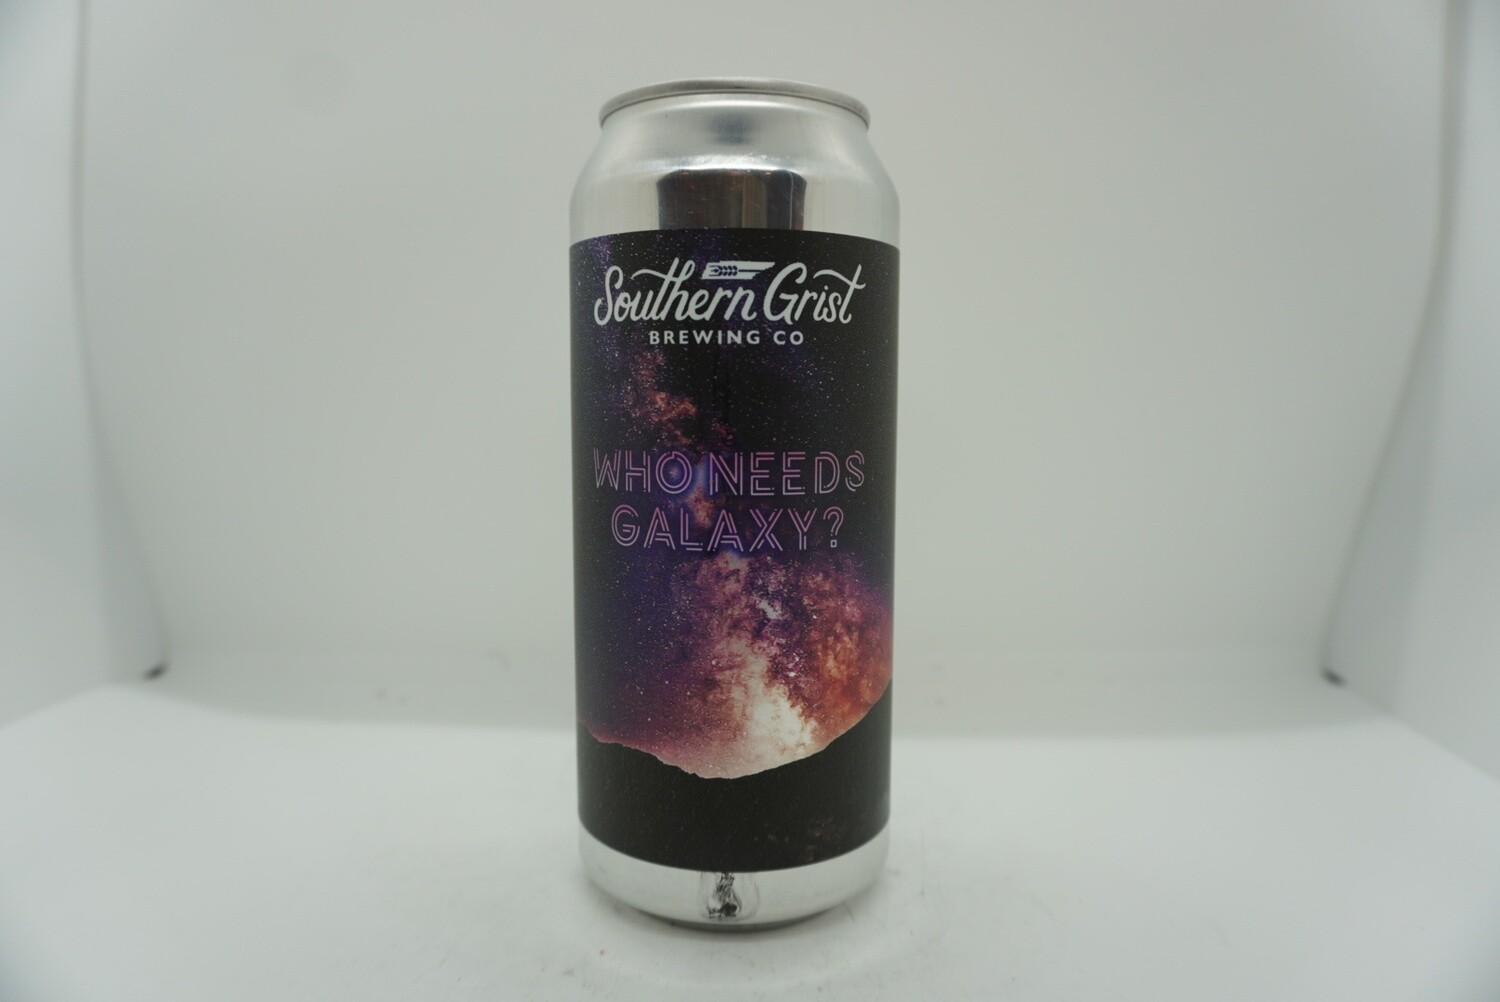 Southern Grist - Who Needs Galaxy? - DIPA - 7.5% ABV - 16oz Can